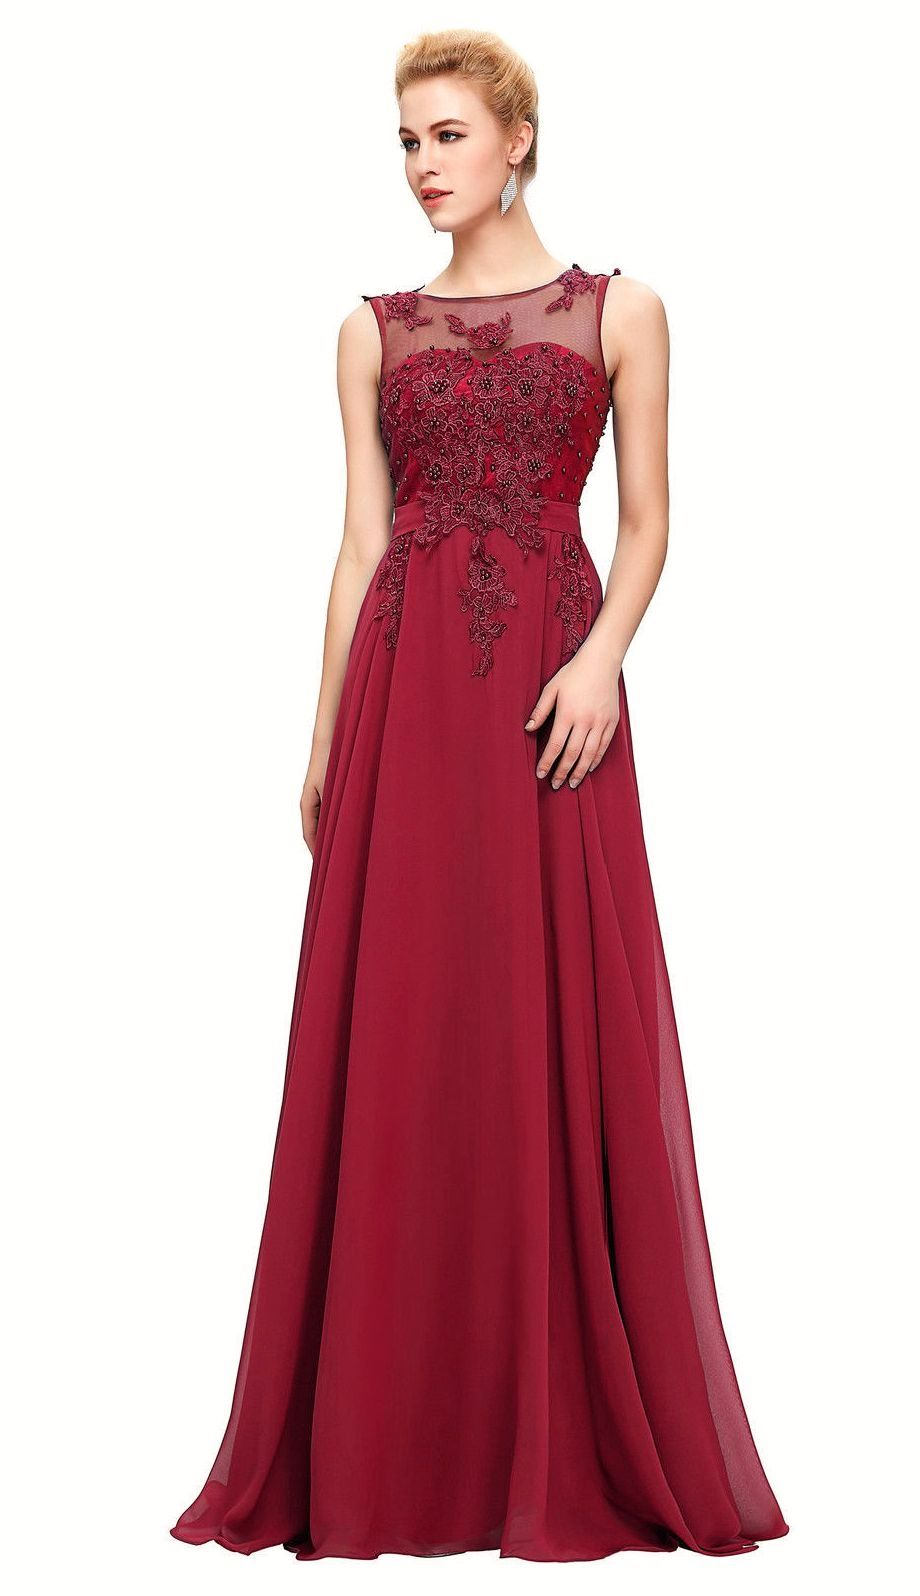 Adele Berry Burgundy Wine Beaded Lace Long Bridesmaid Wedding Bridal Evening Prom Cruise Ballgown Dress Loulous Bridal Boutique UK company